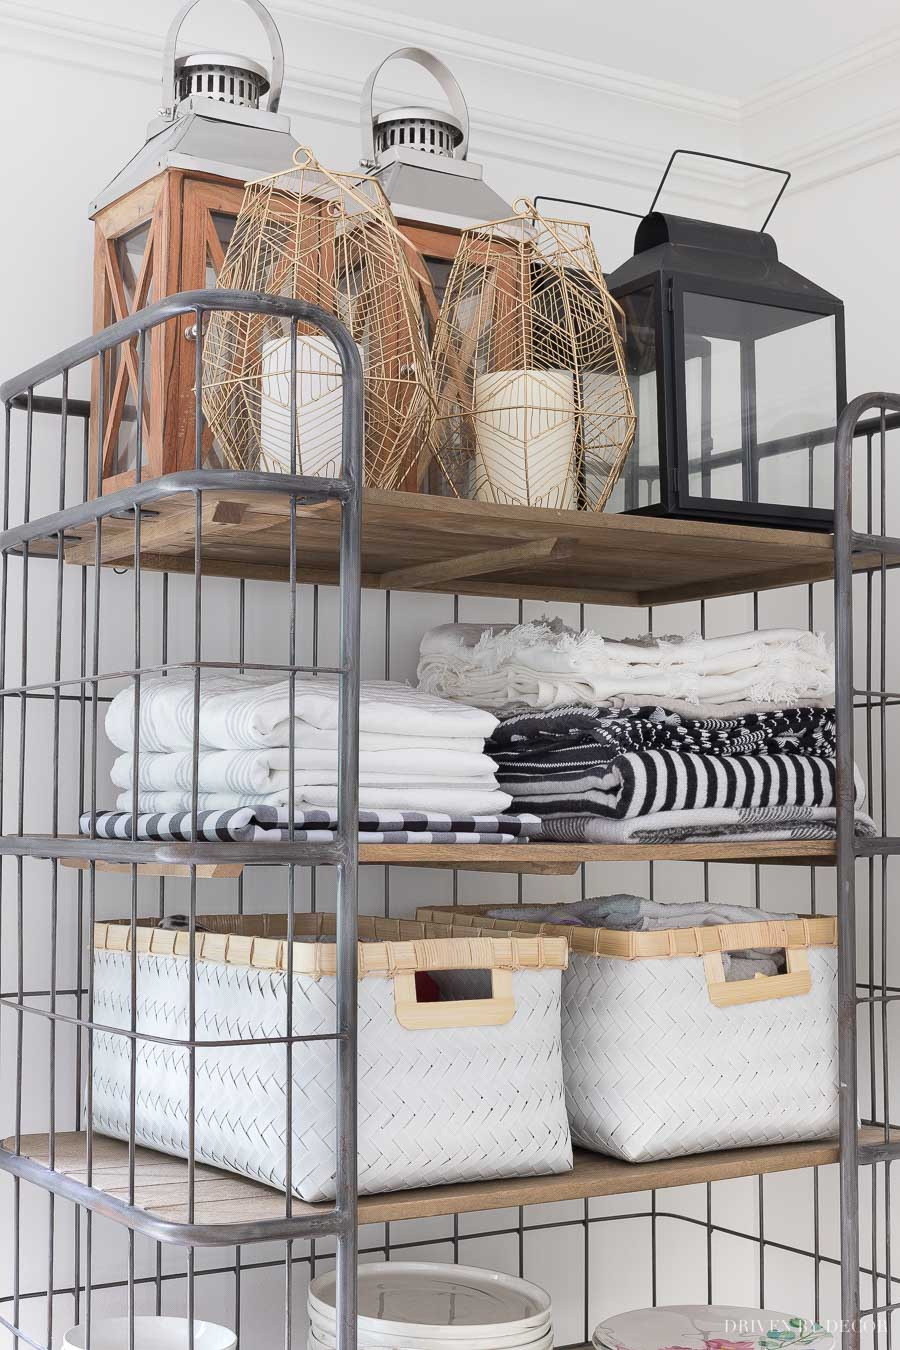 Our open rolling baker's rack holds extra tablecloths, outdoor throws, bins with dog supplies, and more!